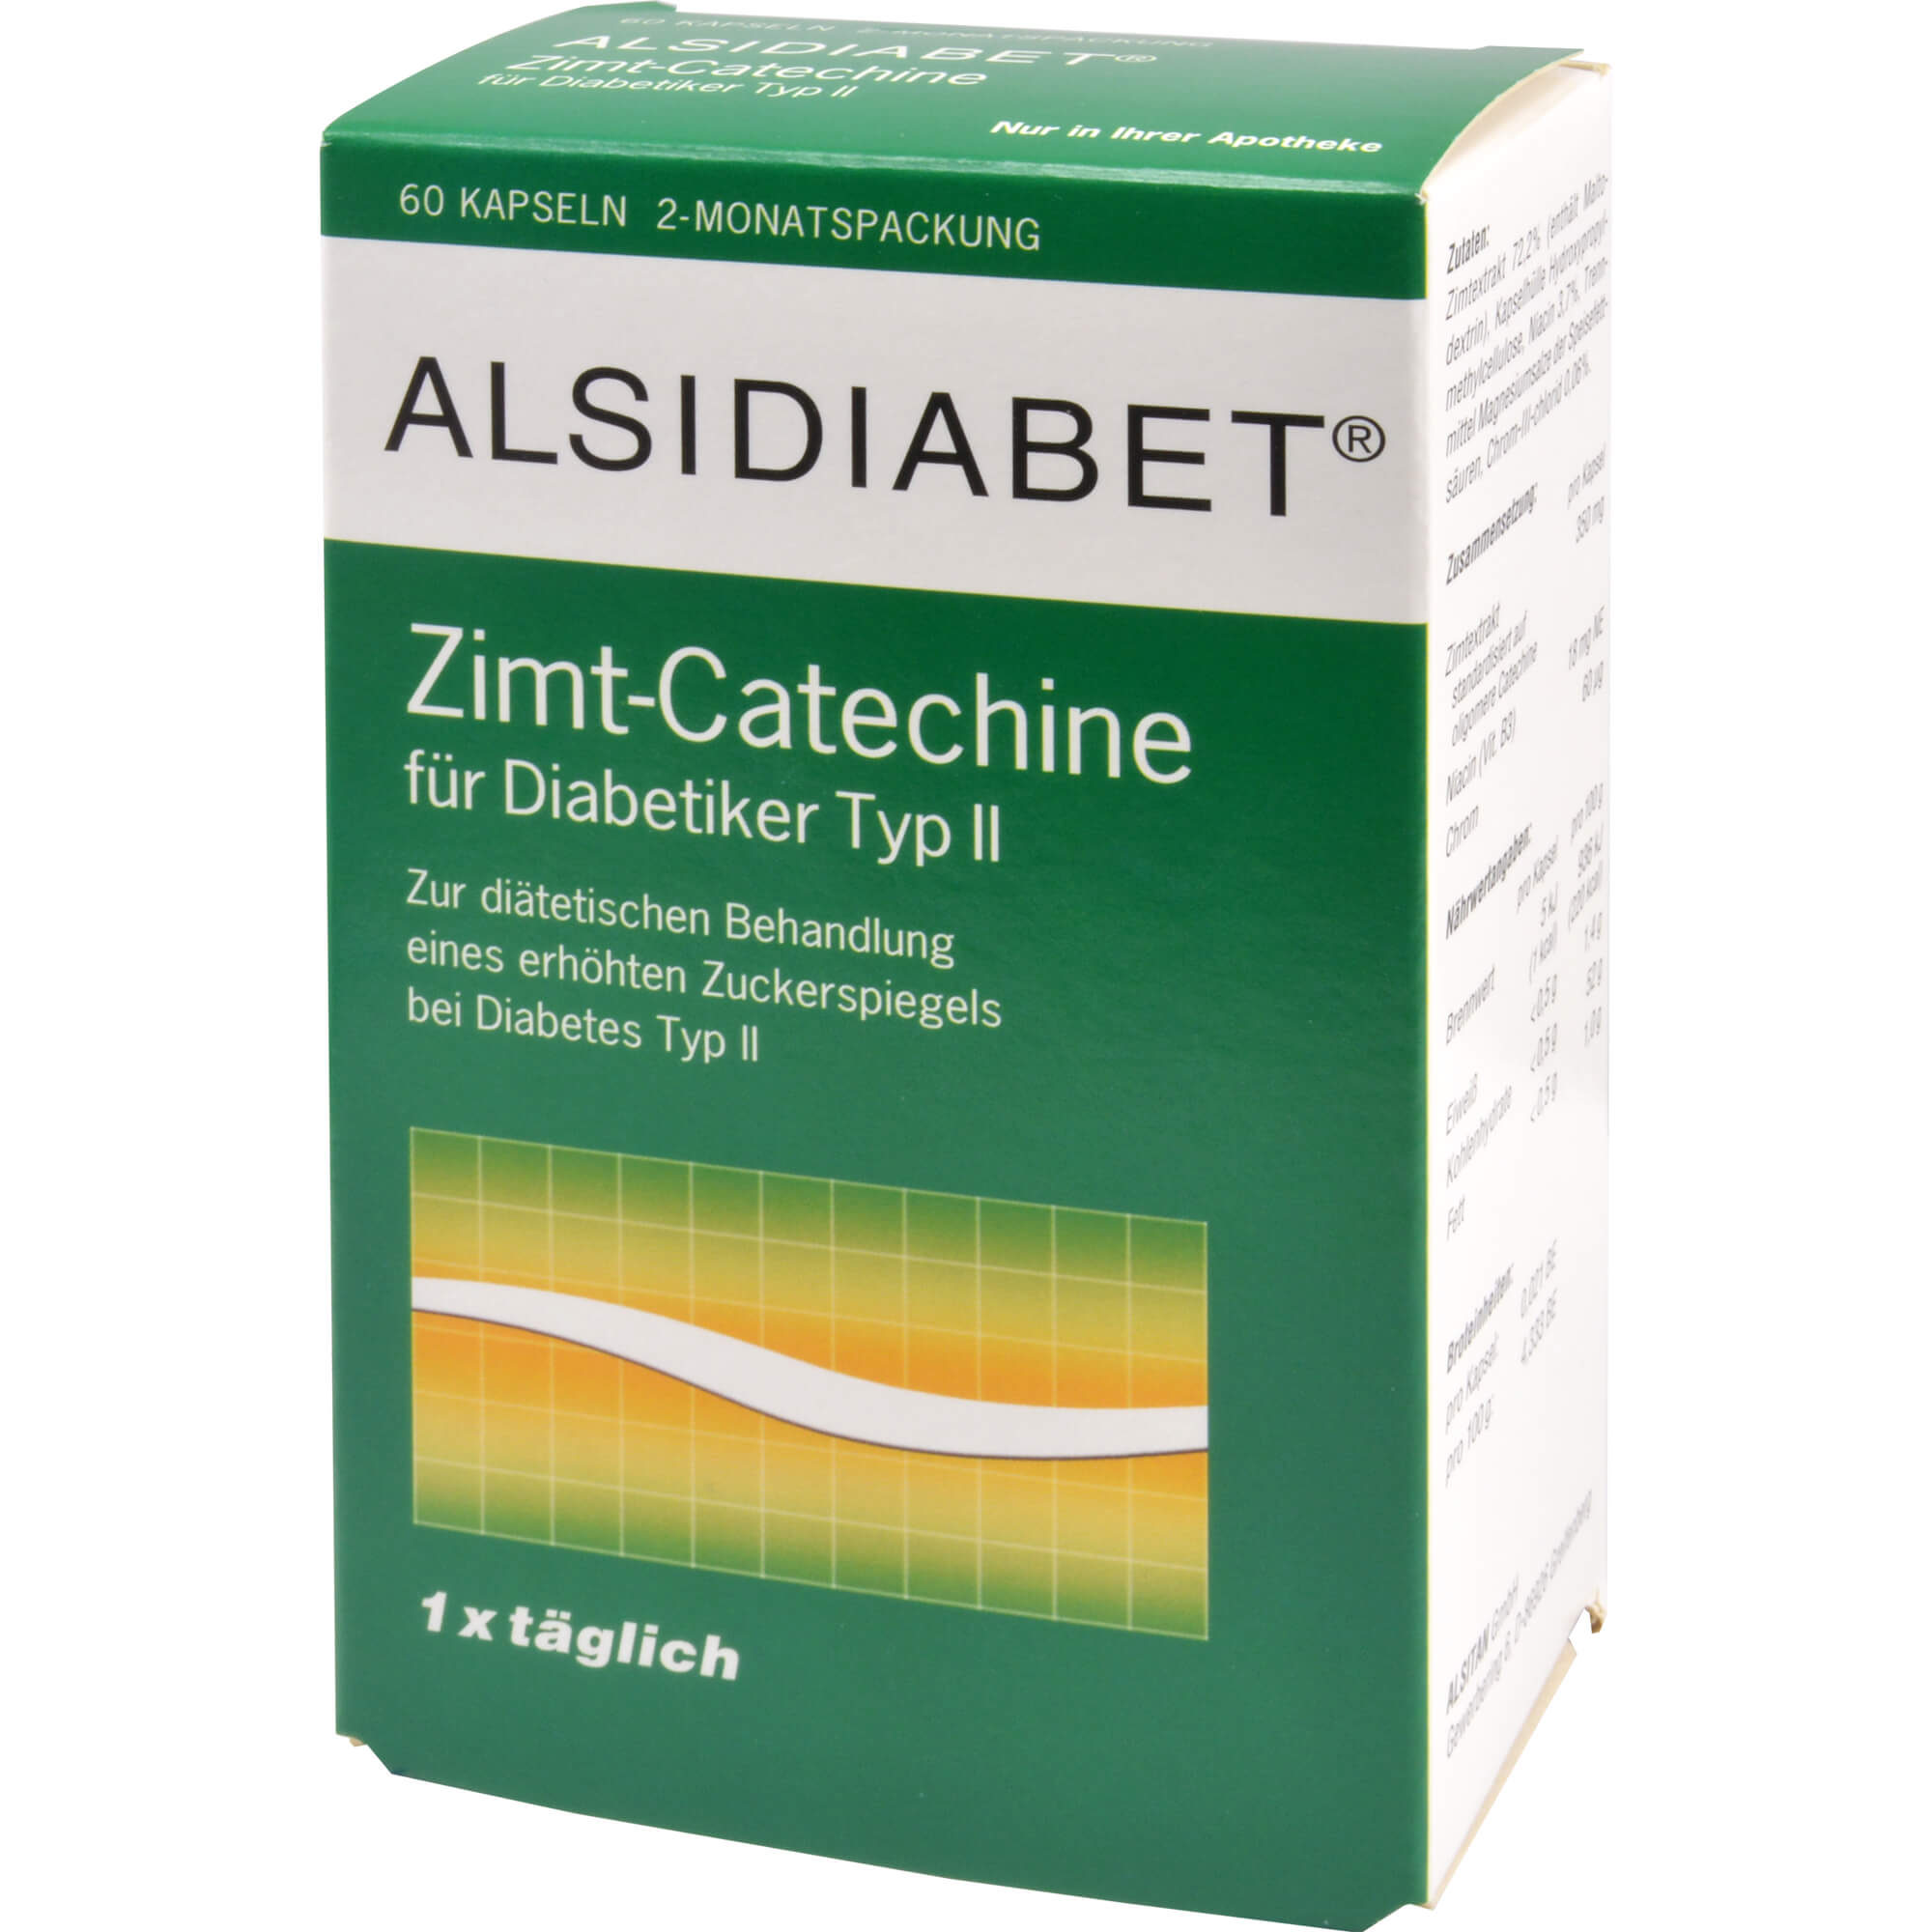 Alsidiabet Zimt-Catechine